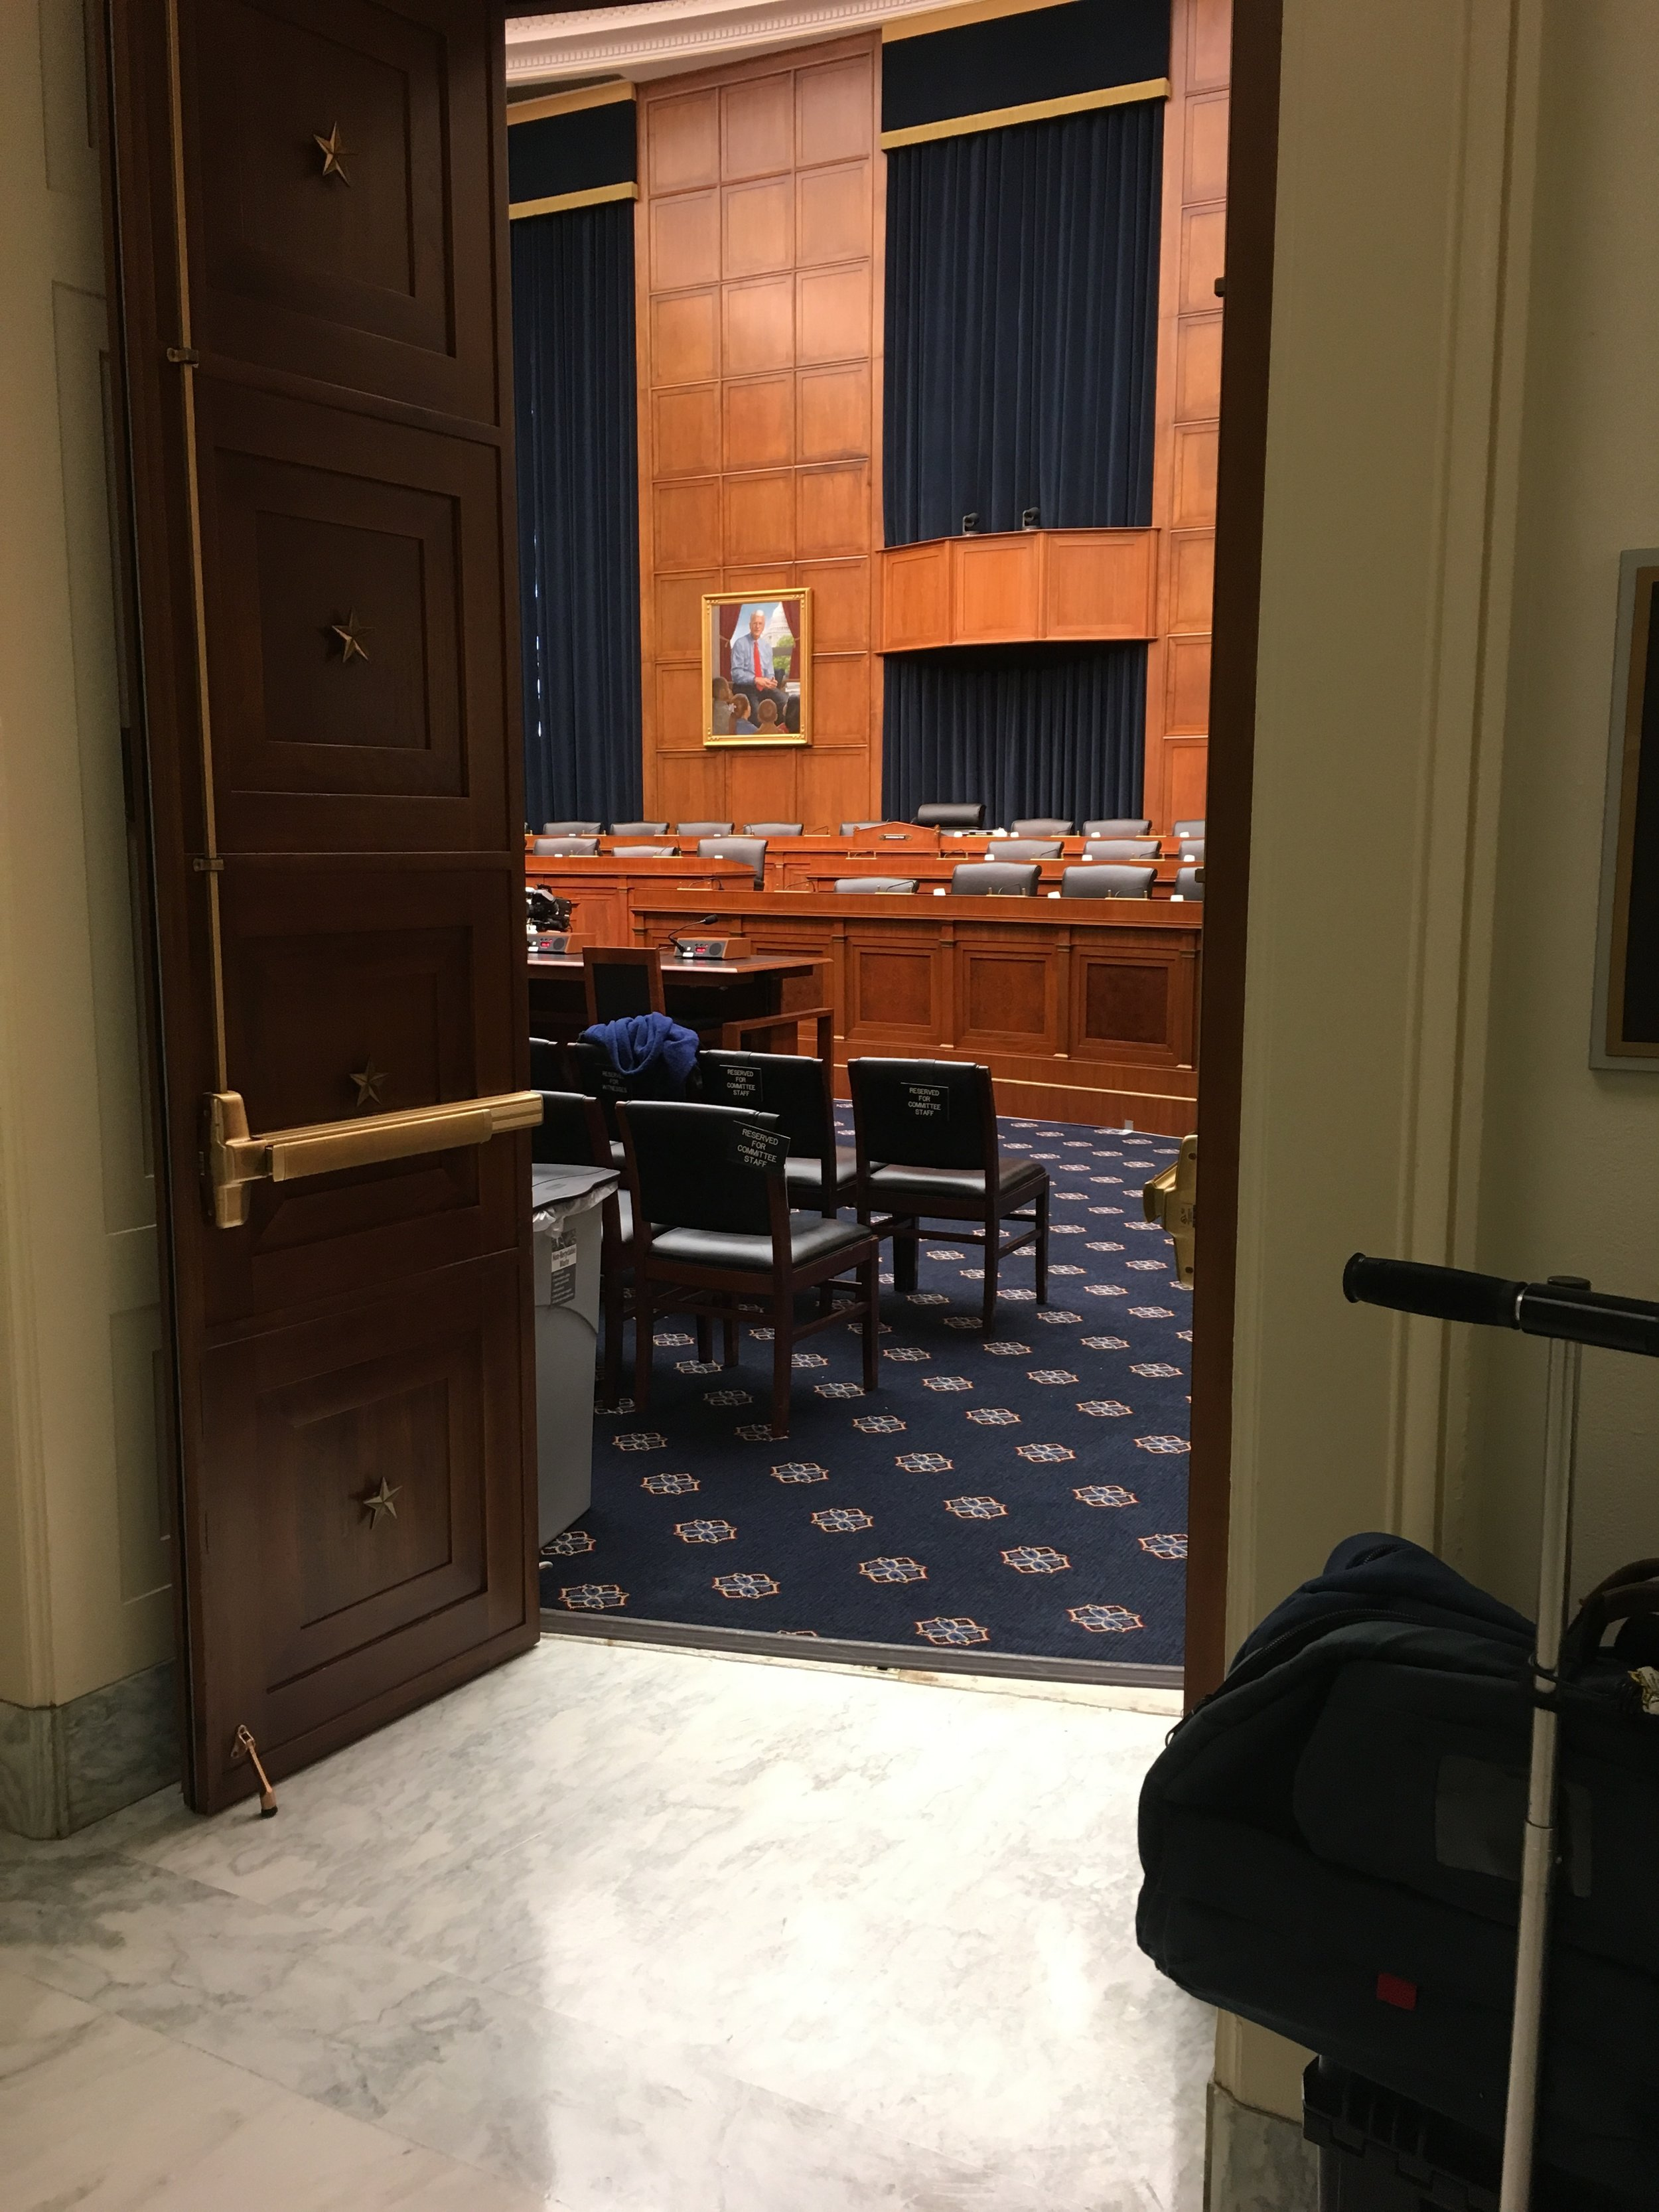 A shot from the outside of the hearing room before we were allowed in.